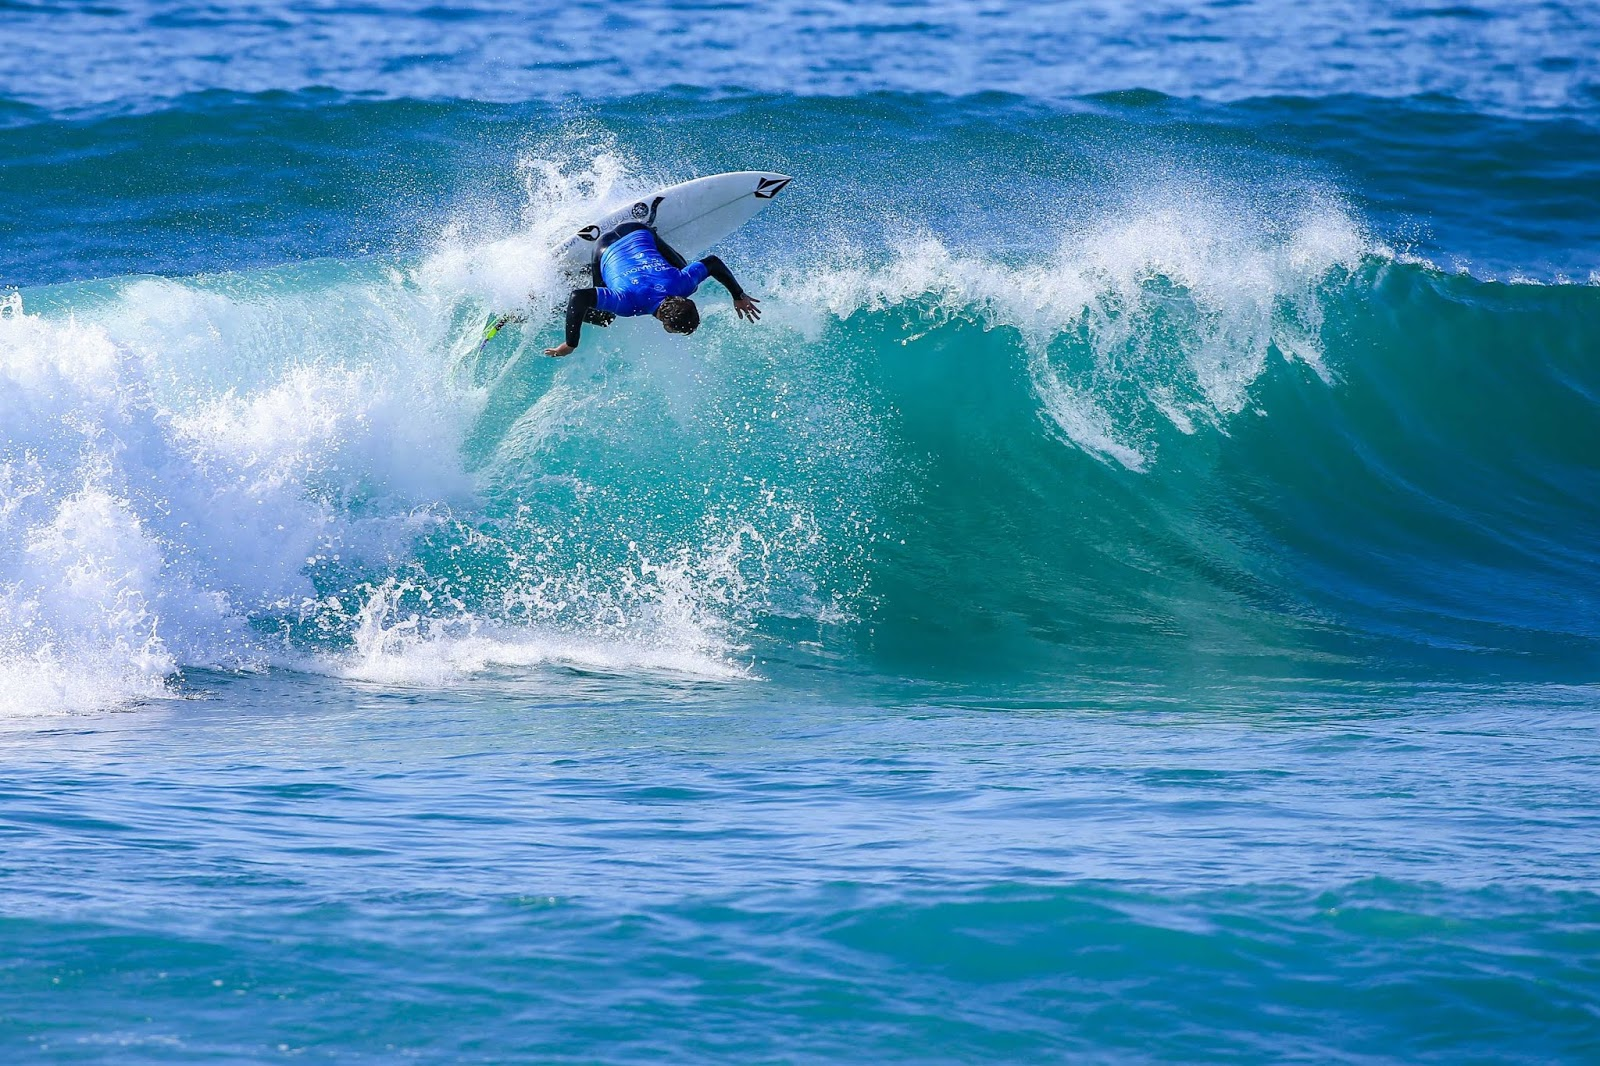 Rio Waida Lights Up at Anza Pro Taghazout Bay Highlights